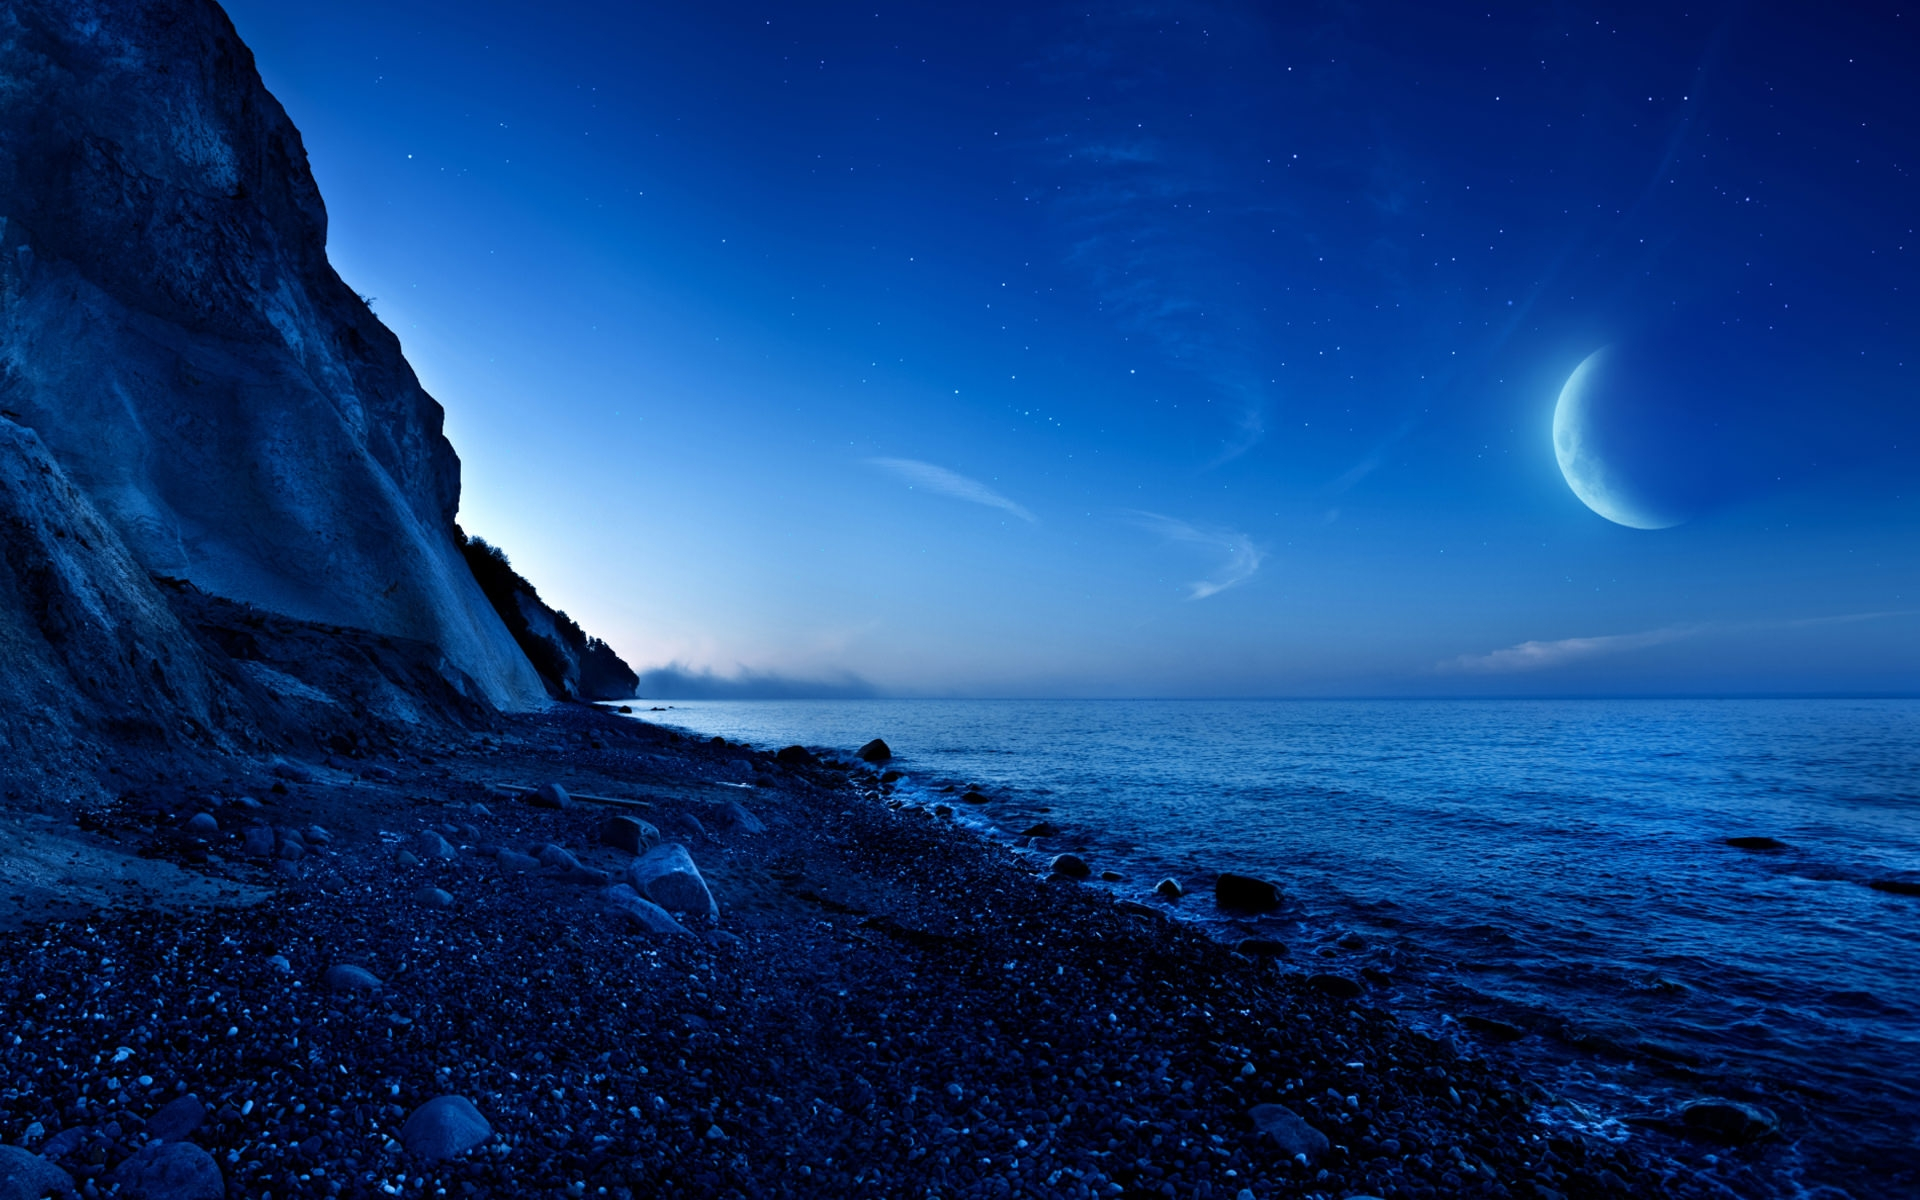 nightfall_mountain_sea_moon-wide